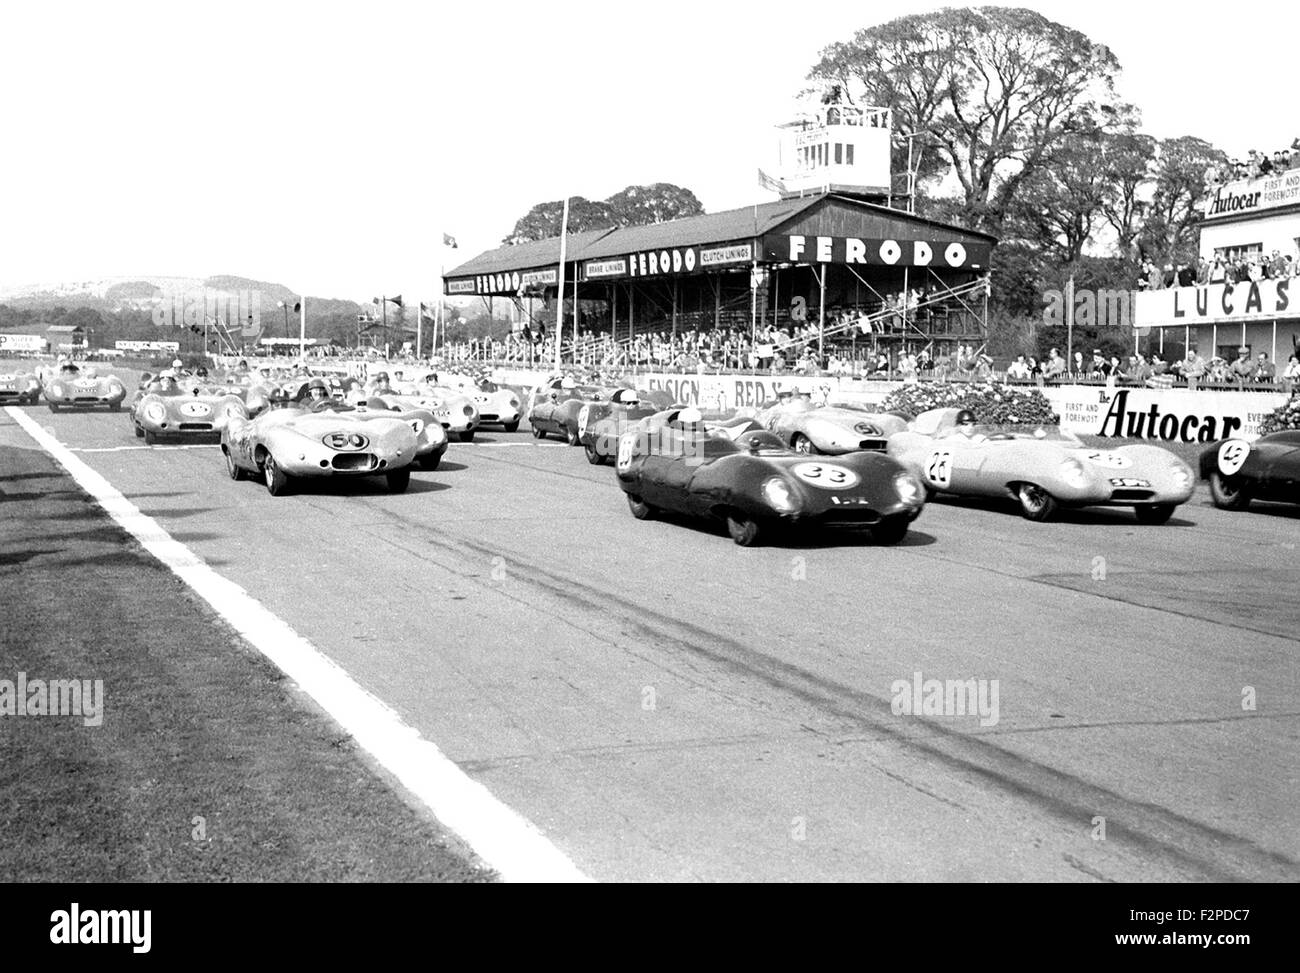 Start des Rennens am Goodwood 1957 Stockbild